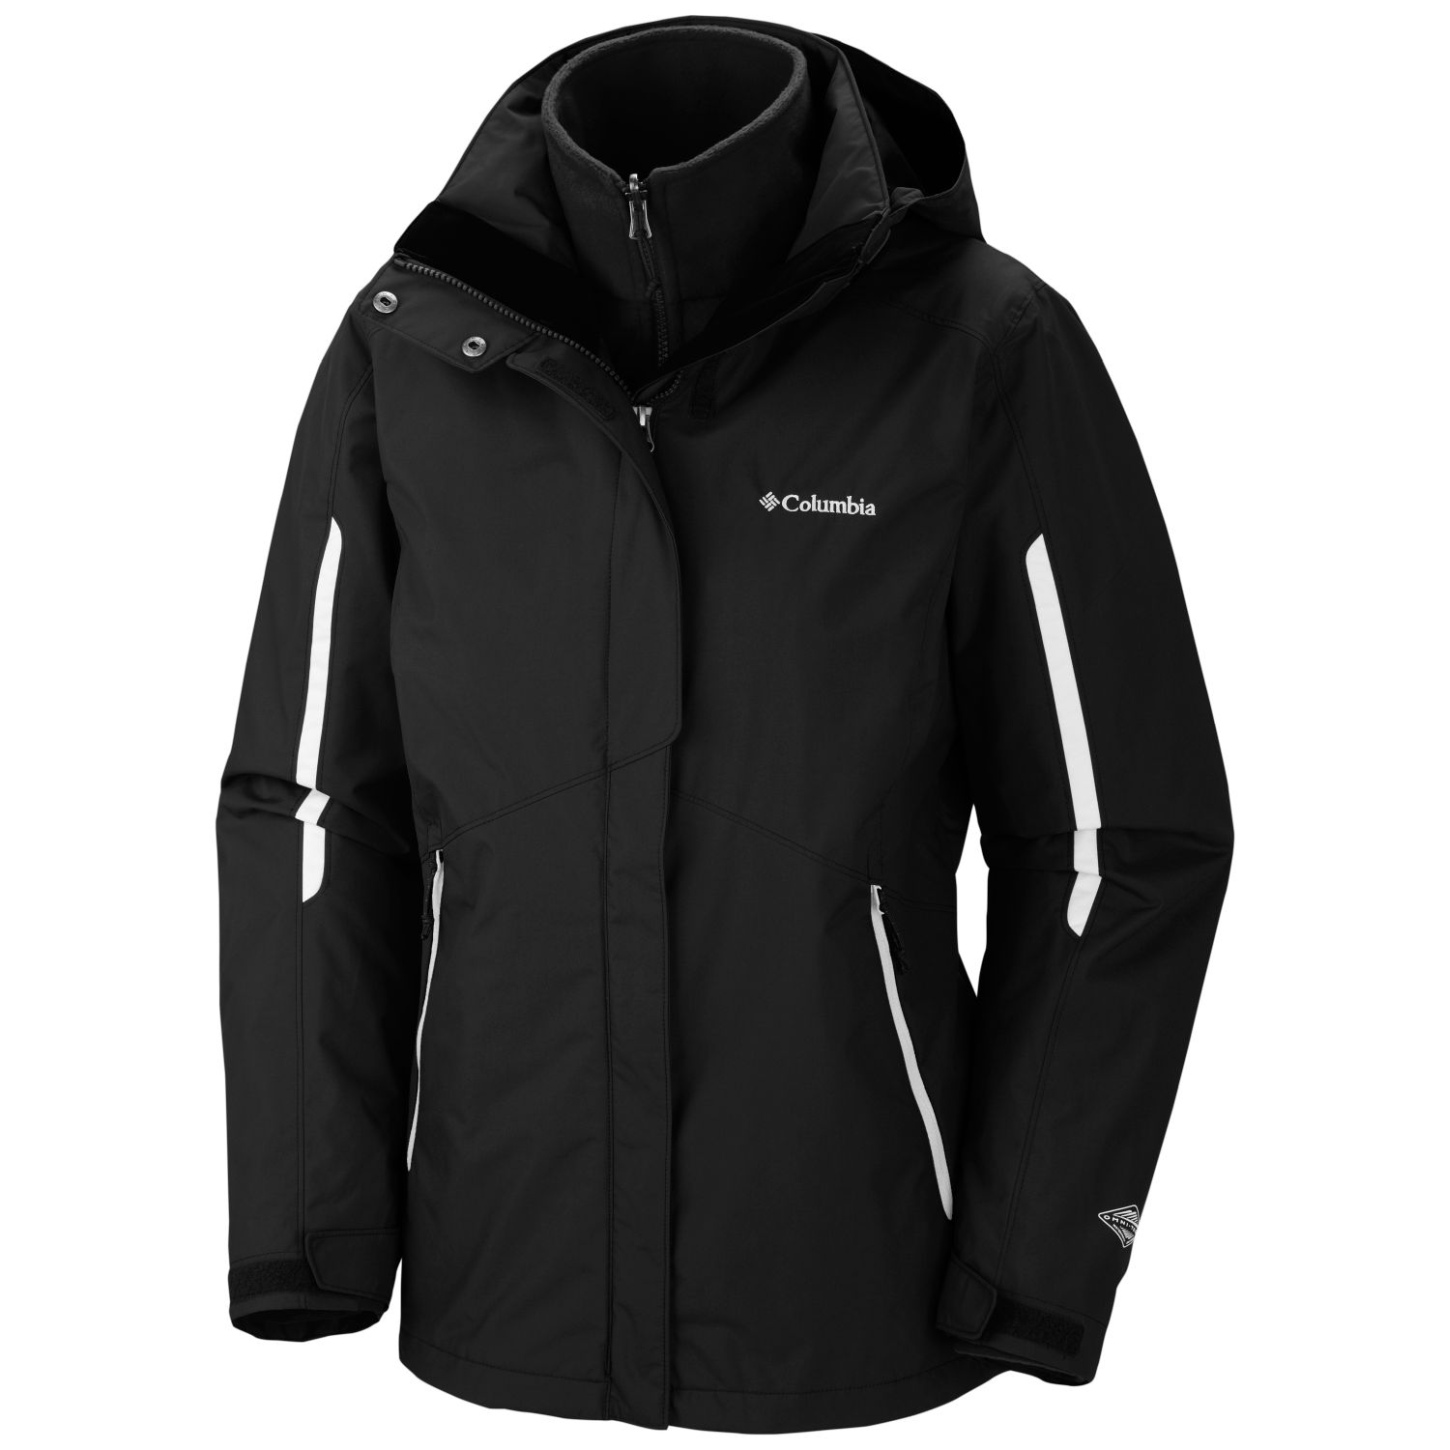 Columbia Women's Bugaboo Interchange Ski Jacket Black-30